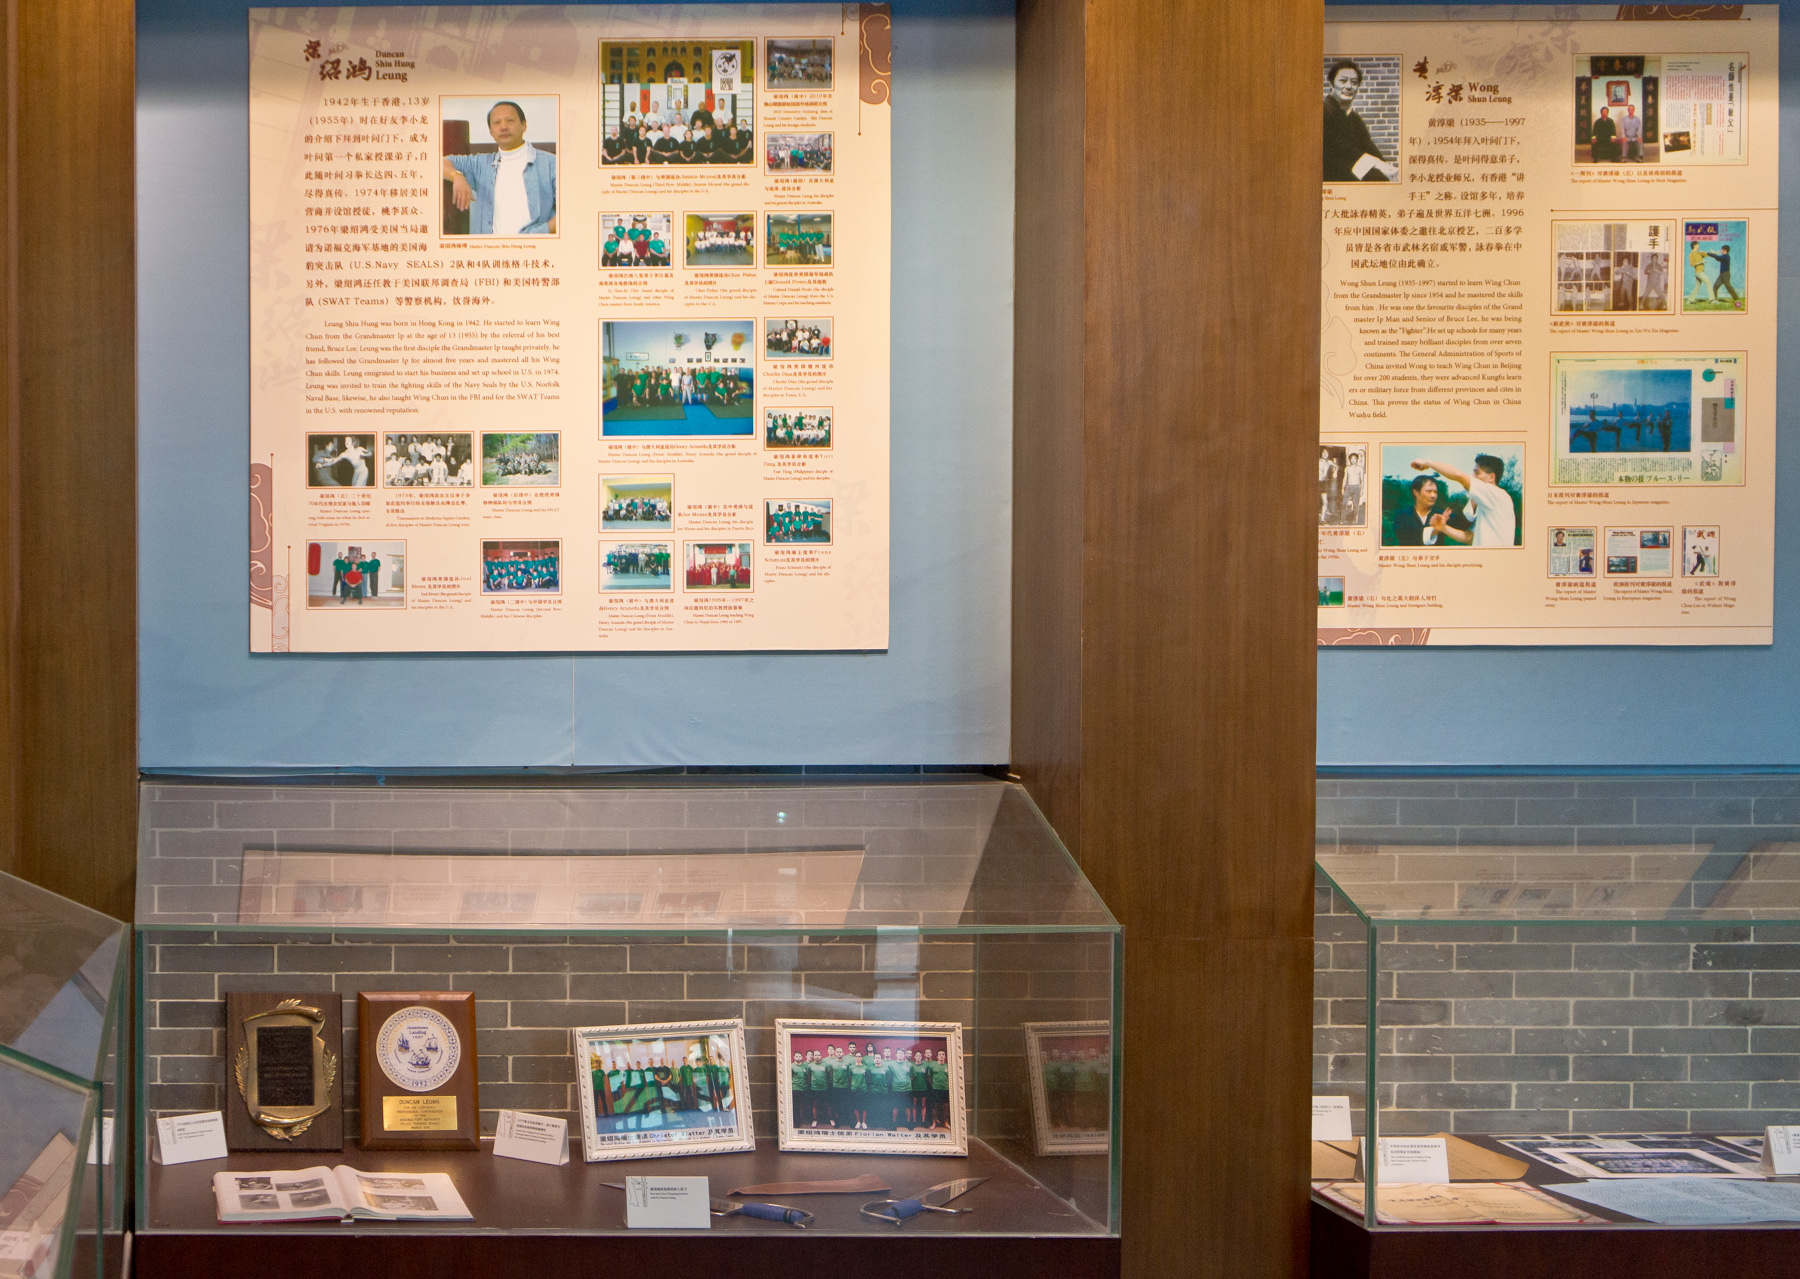 Display case within memorial hall beside Wong Shun Leung